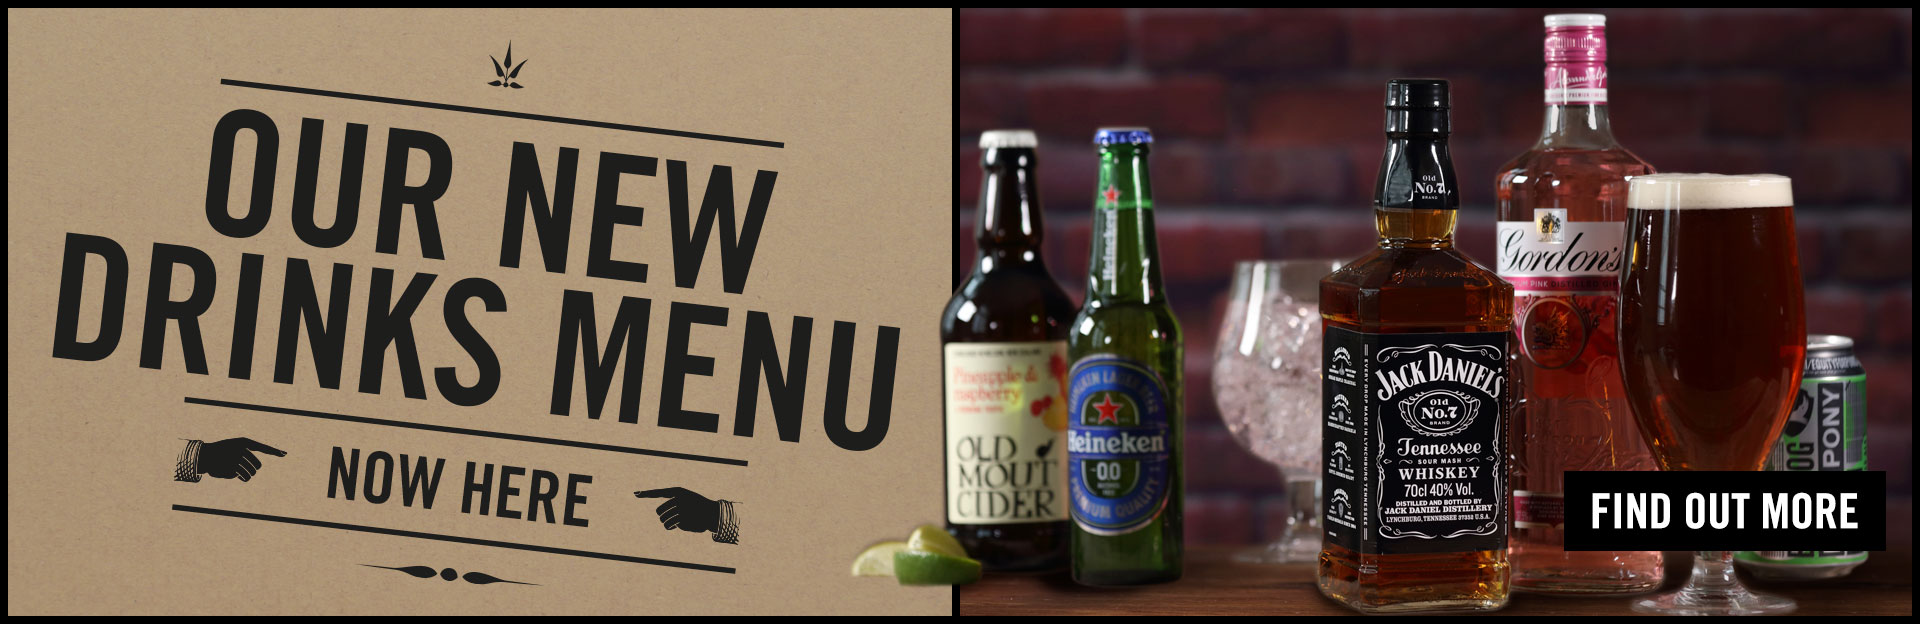 New Drinks Menu Coming Soon at The Duke of Wellington